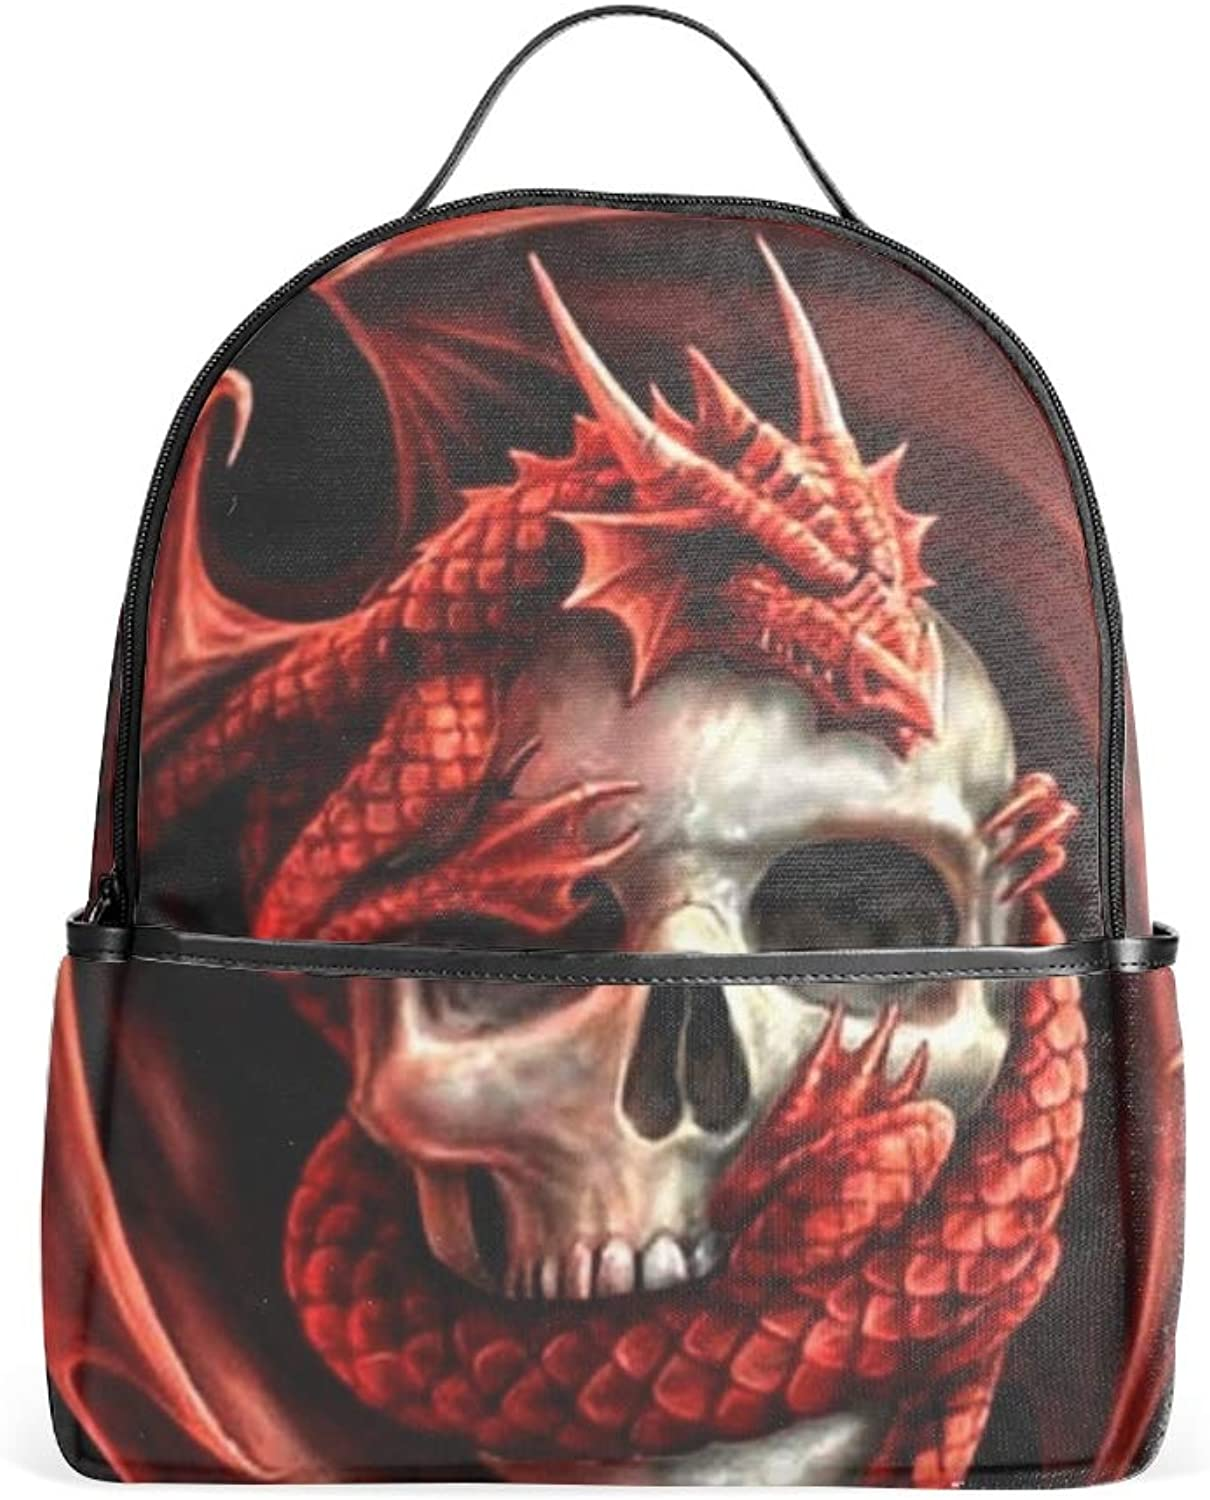 Dragons and Skulls Casual Backpack Bag, Fashion Lightweight Backpacks for Teen Young Girls